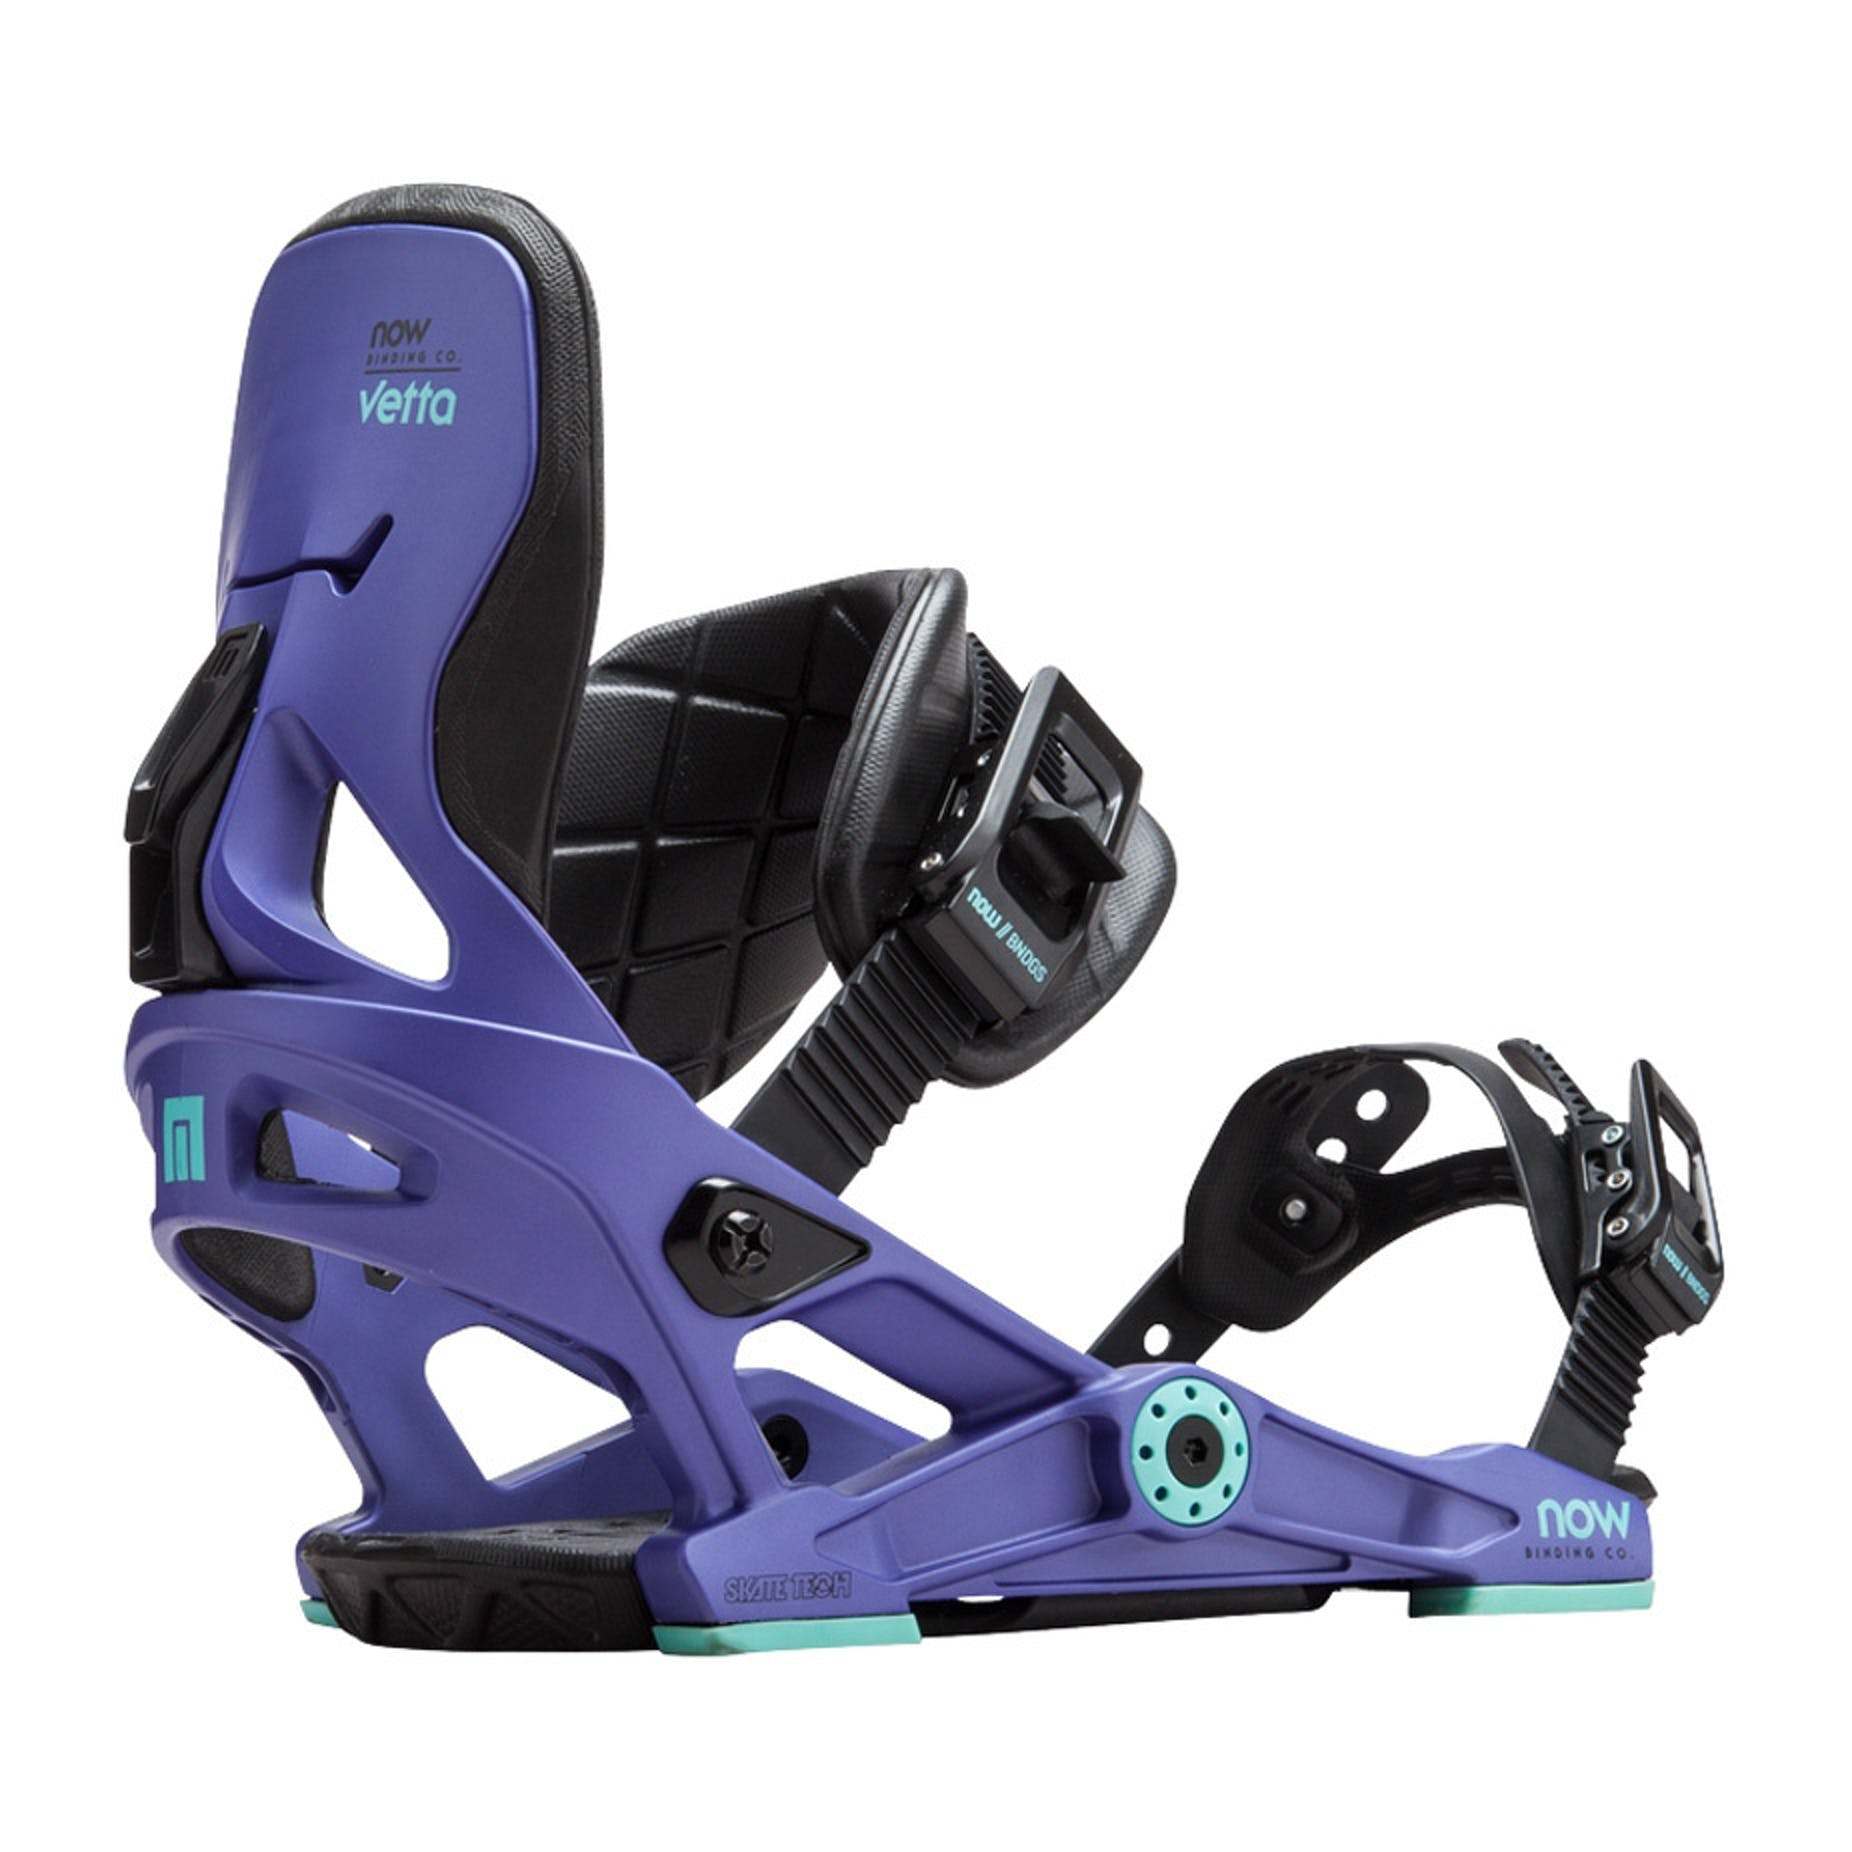 Now Vetta Women's Snowboard Bindings 2019